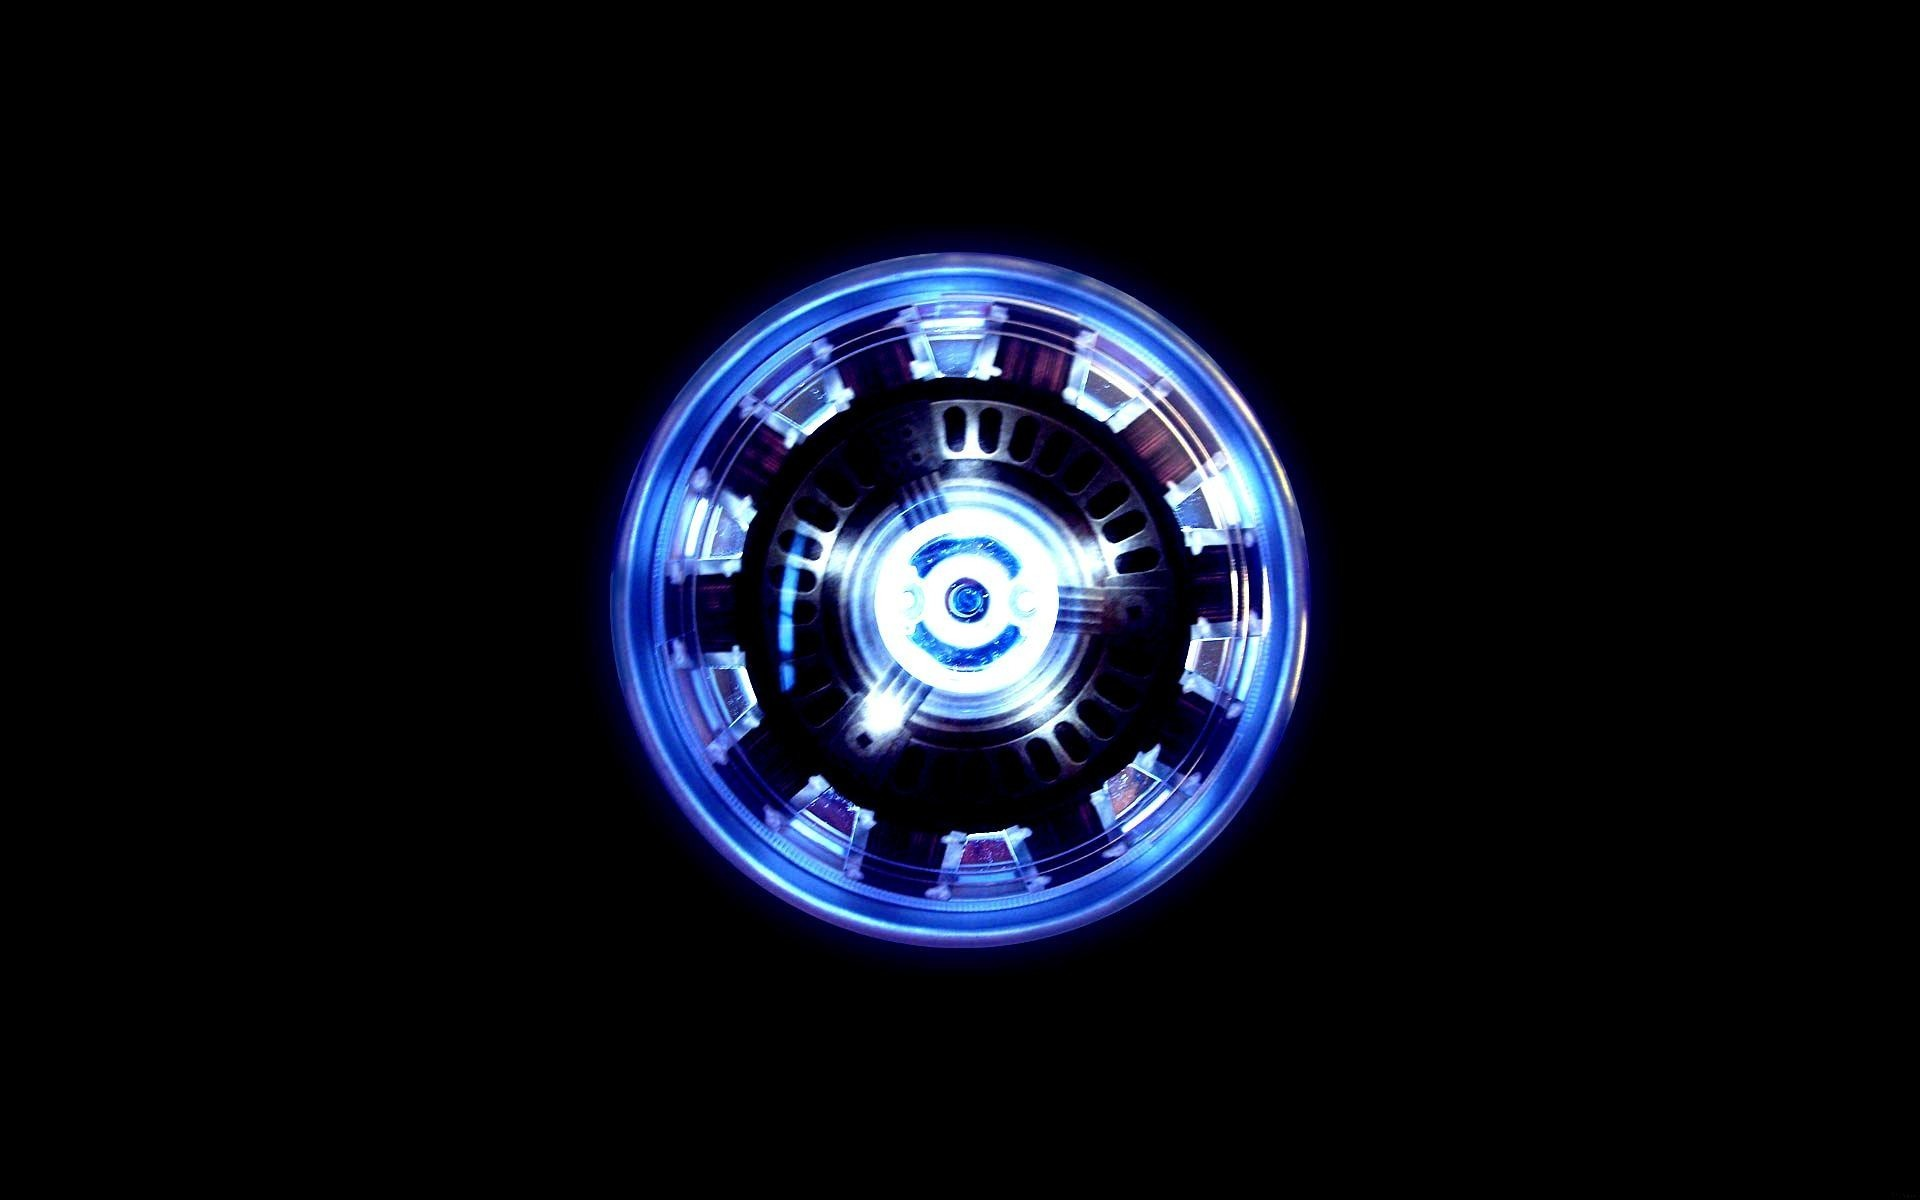 Arc reactor wallpapers 78 background pictures 2612x1564 arc reactor iron man wallpaper free download malvernweather Choice Image